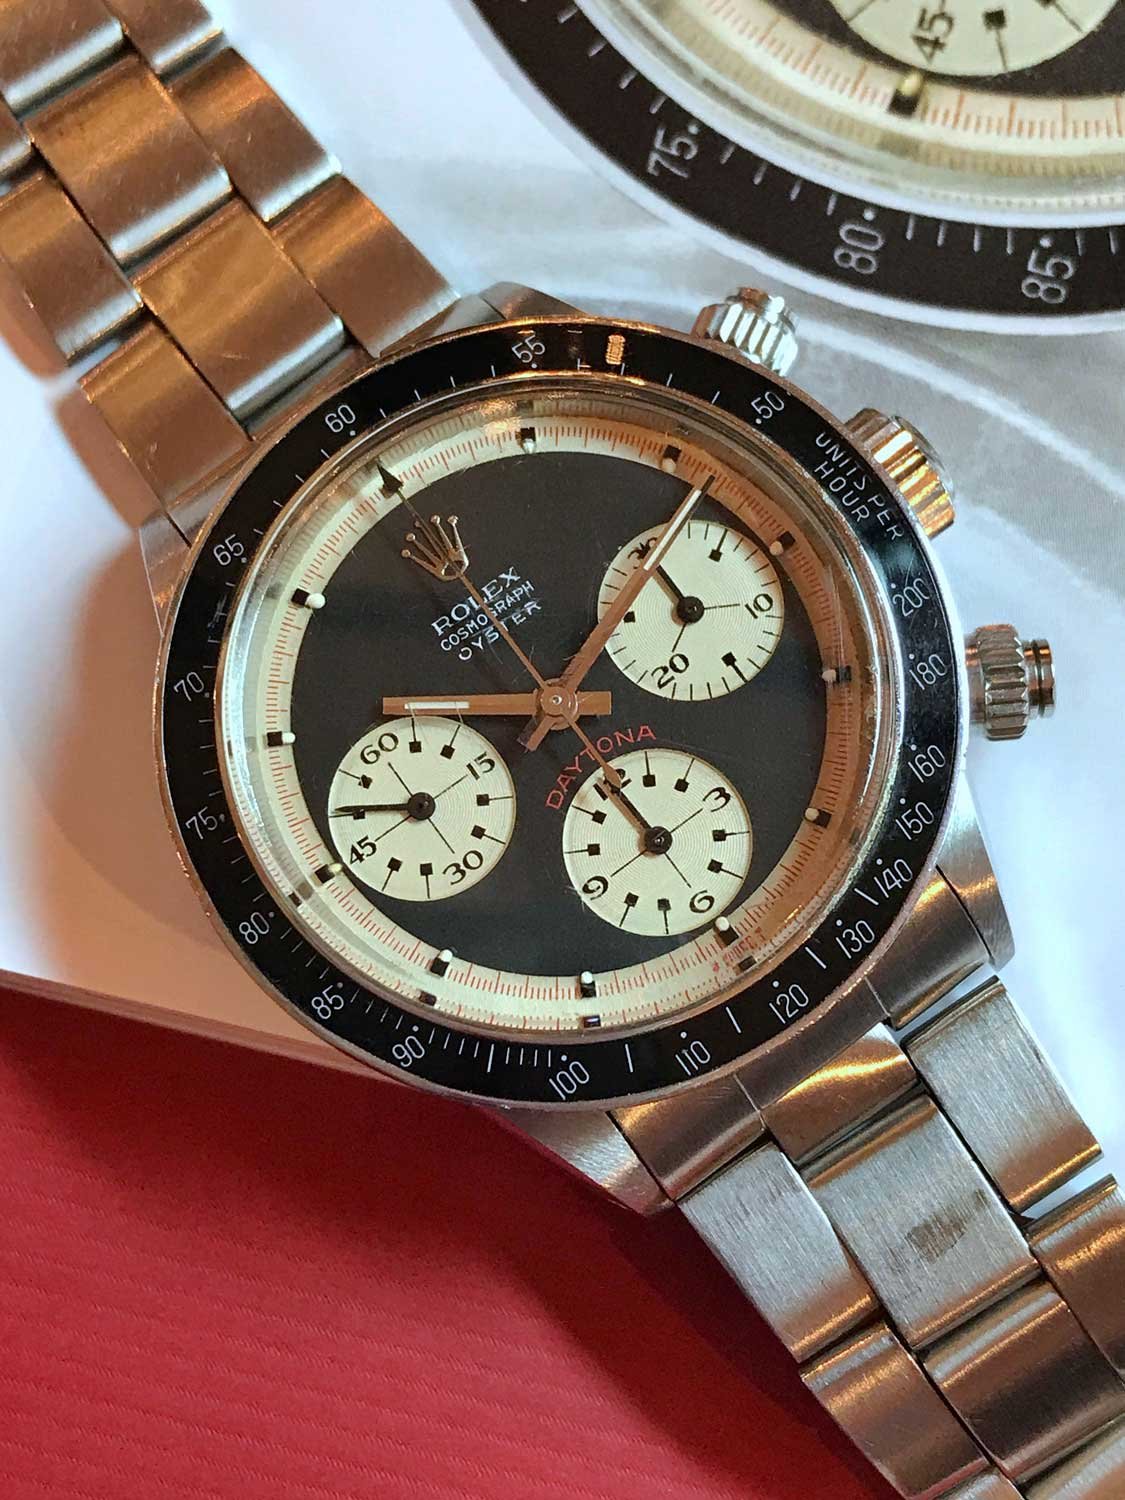 Rolex Cosmograph Oyster Daytona